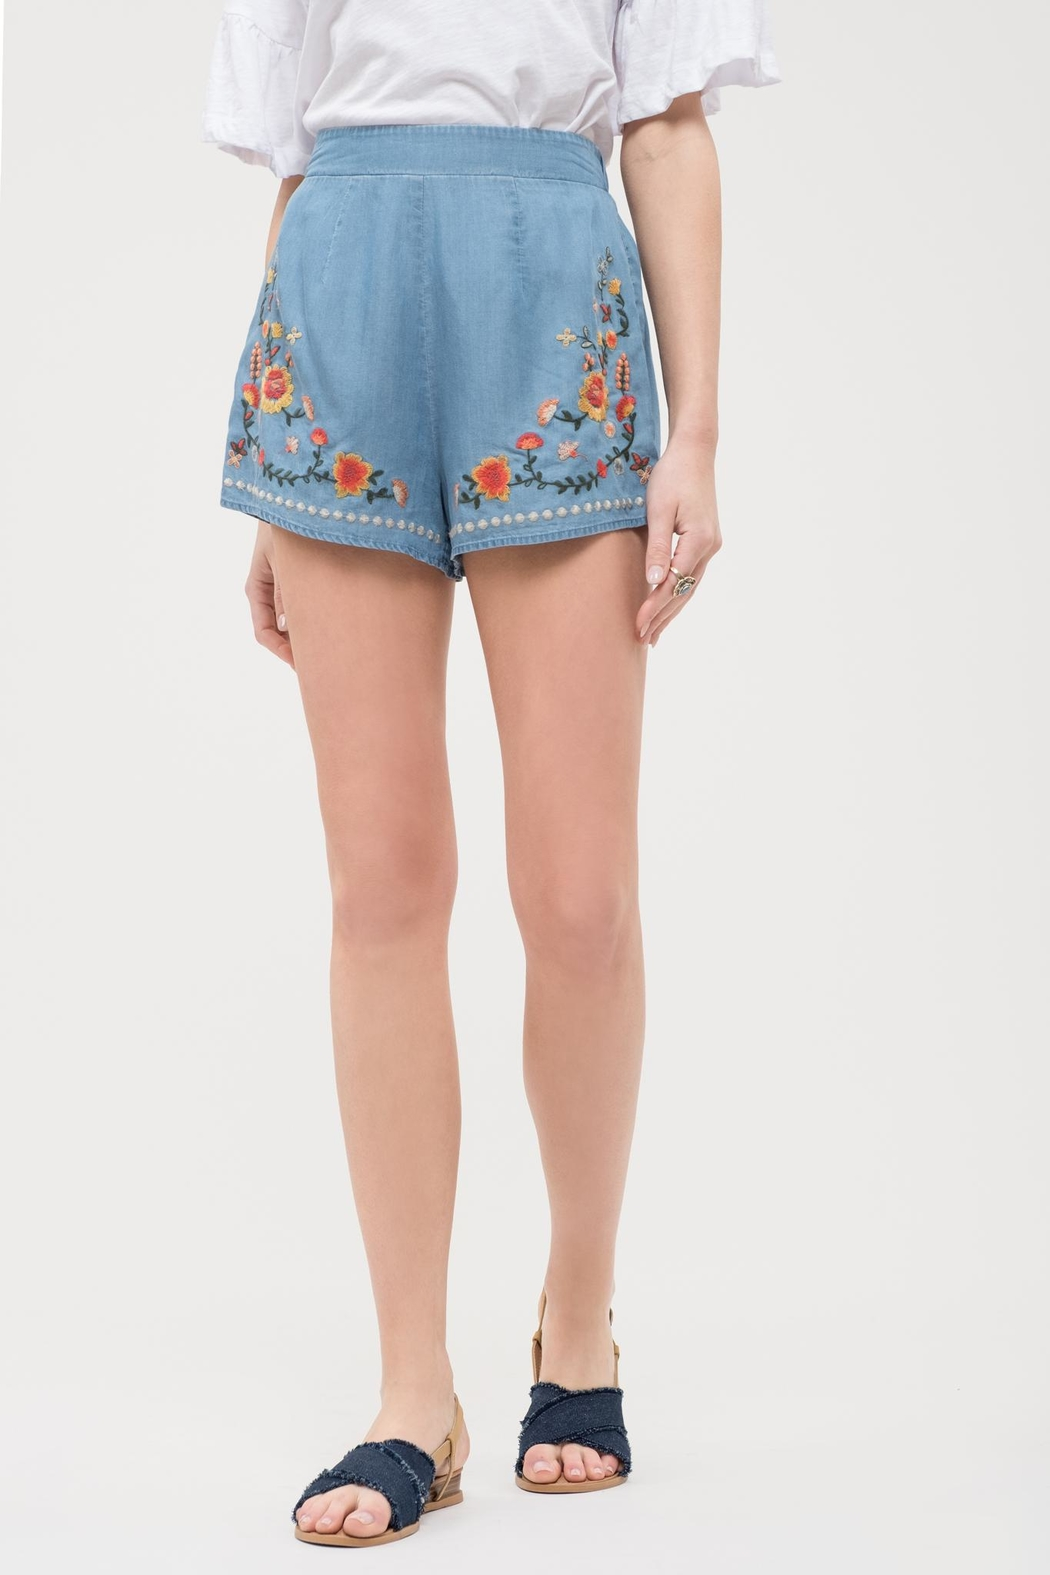 Blu Pepper Chambray Embroidered Shorts - Main Image